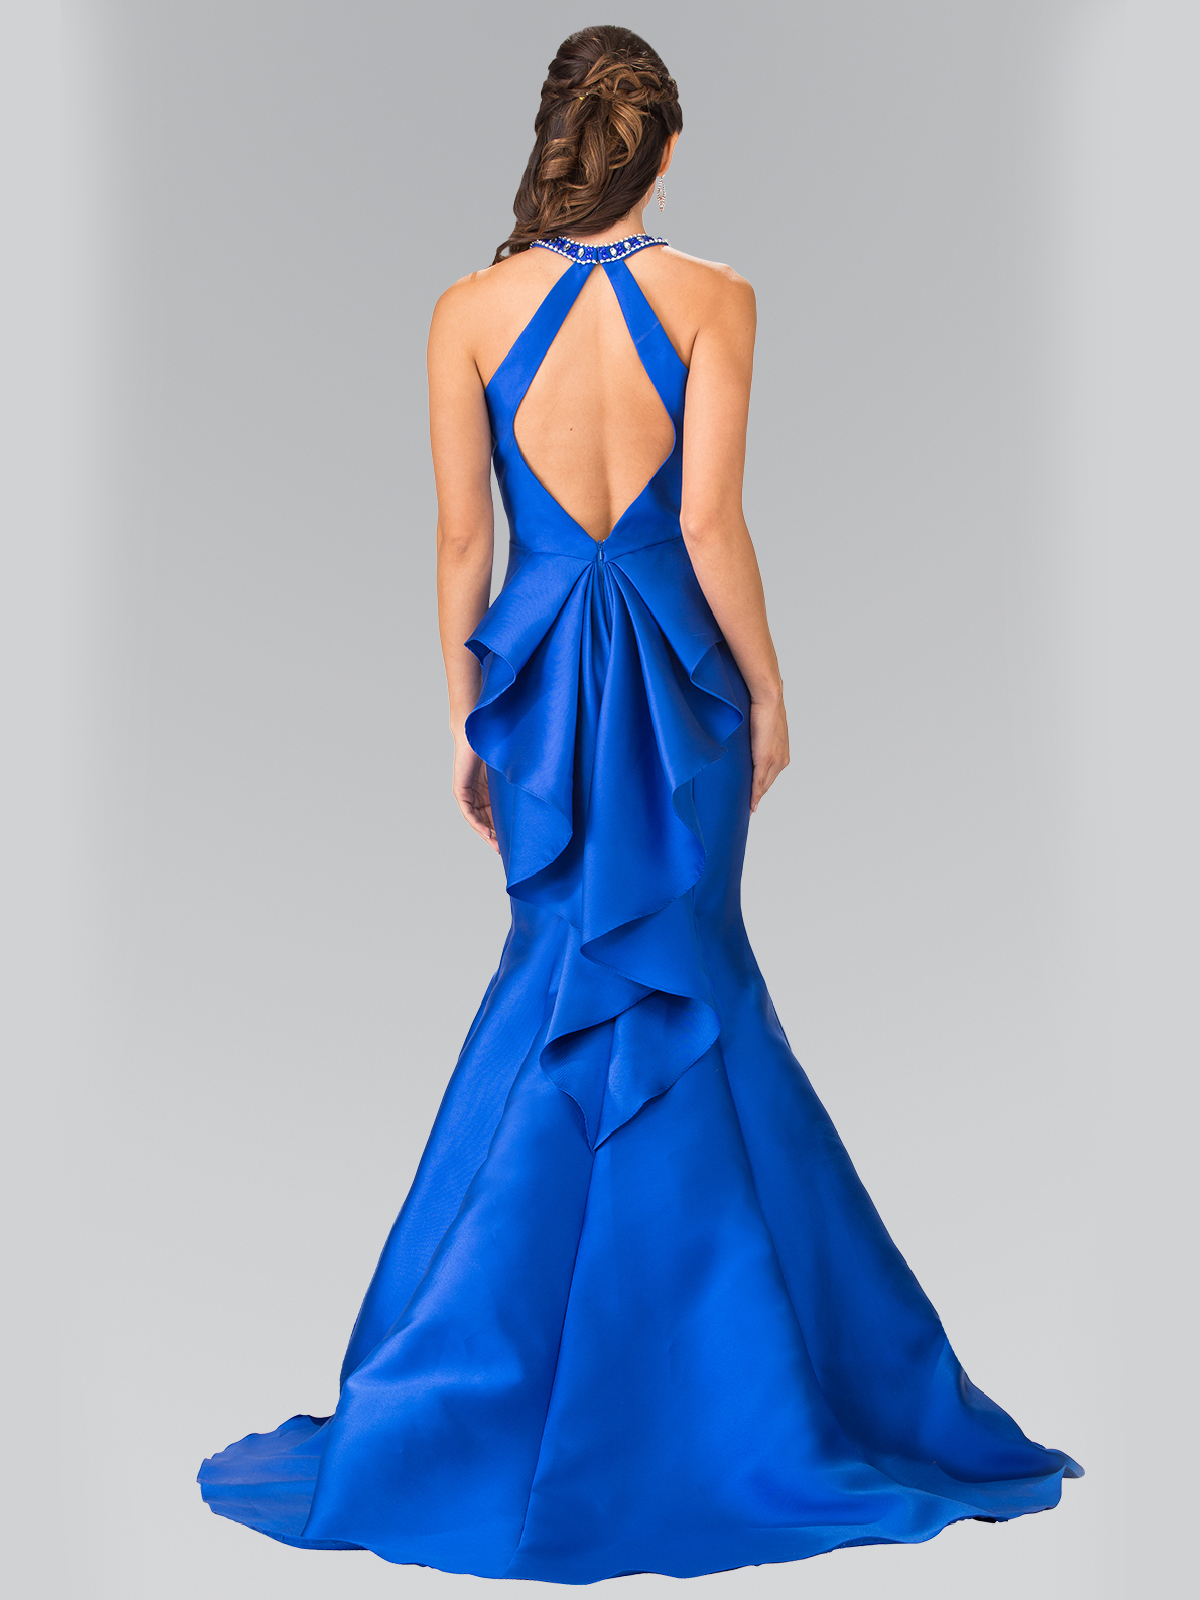 High Neck Mermaid Long Prom Dress Sung Boutique L A